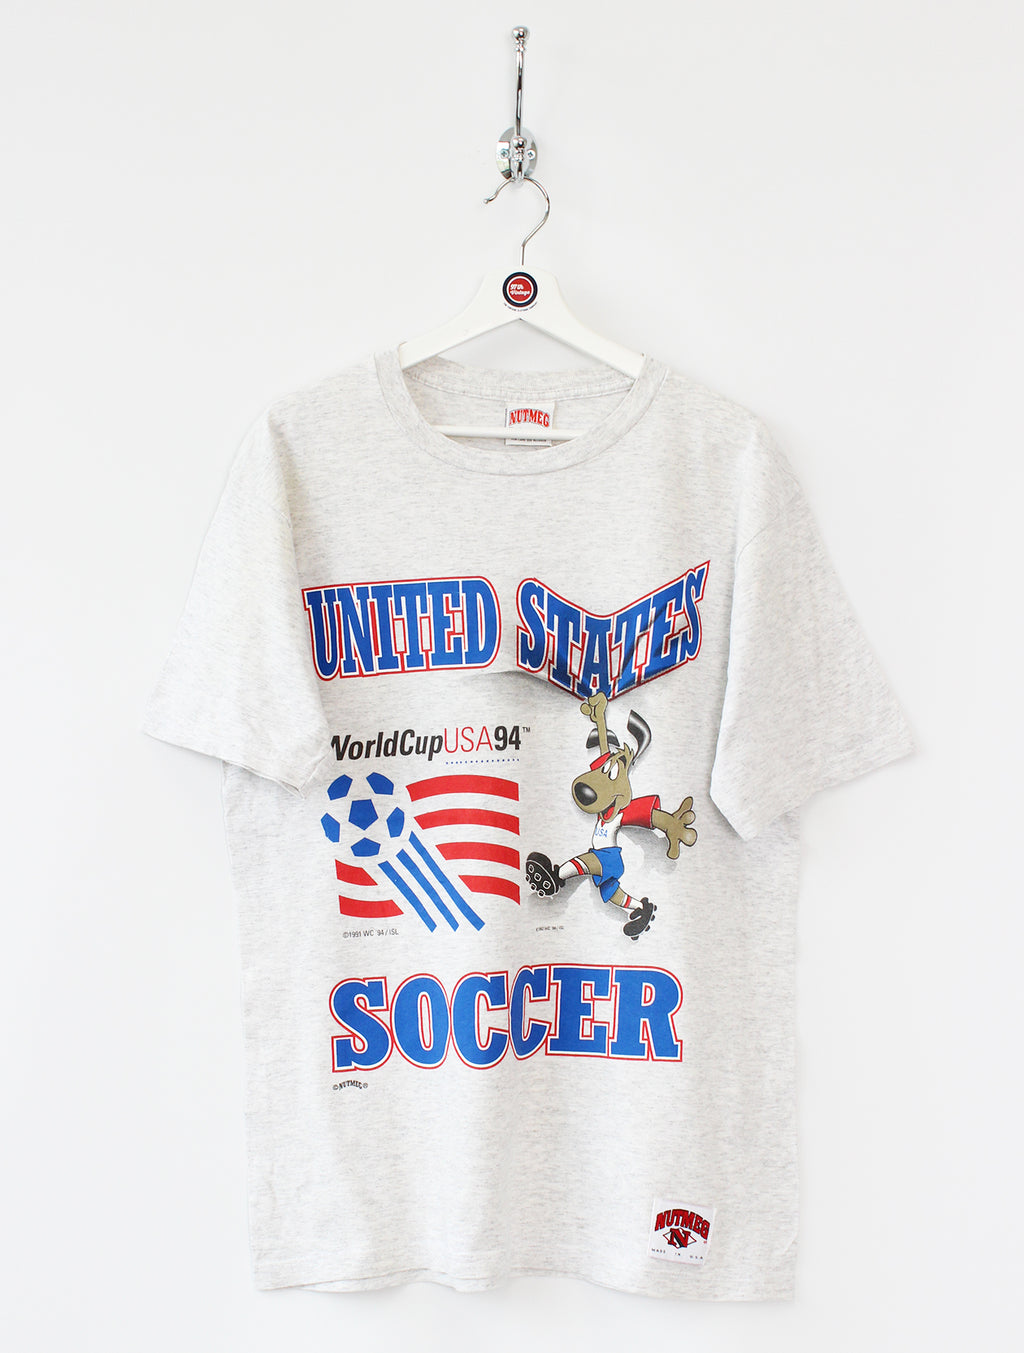 1994 World Cup USA T-Shirt (L)